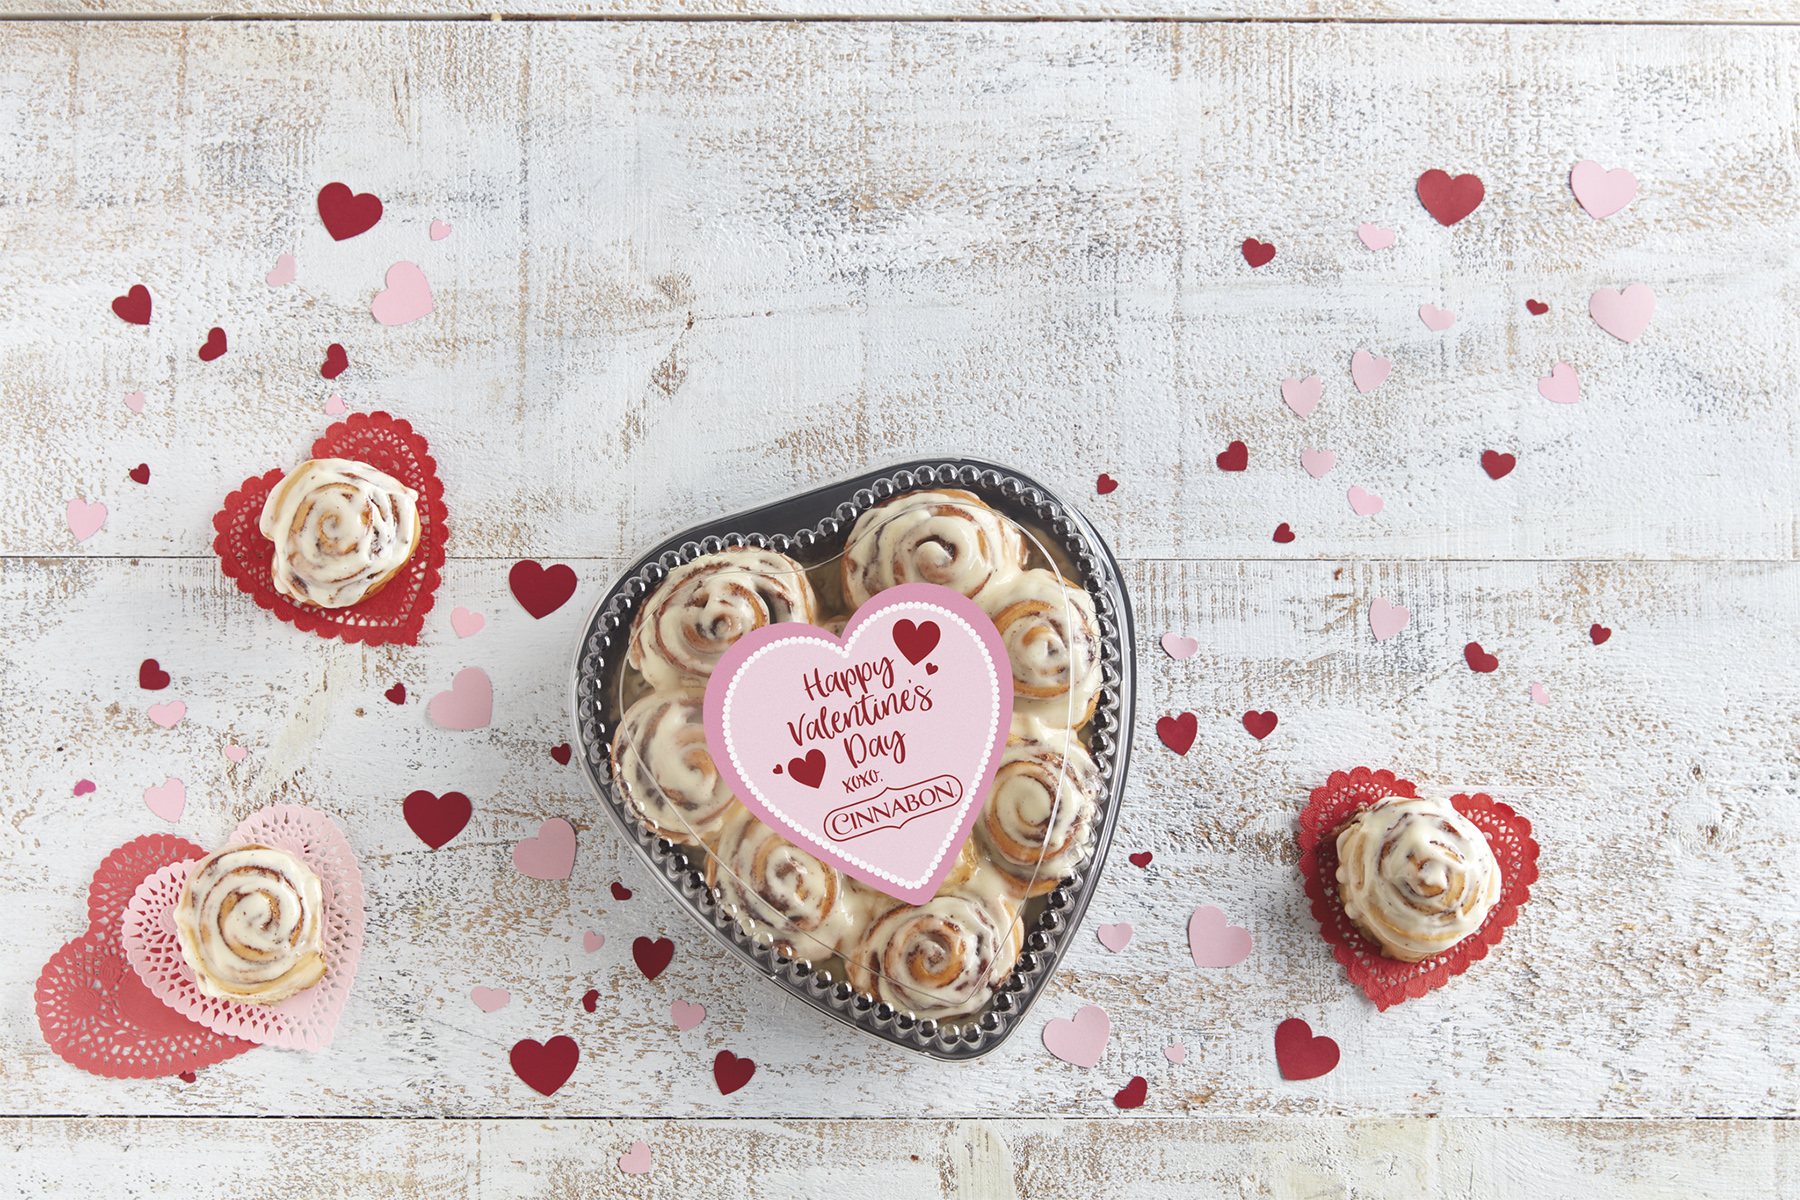 Cinnabon to Deliver Heart-Shaped Boxes of Cinnamon Rolls on Valentine's Day